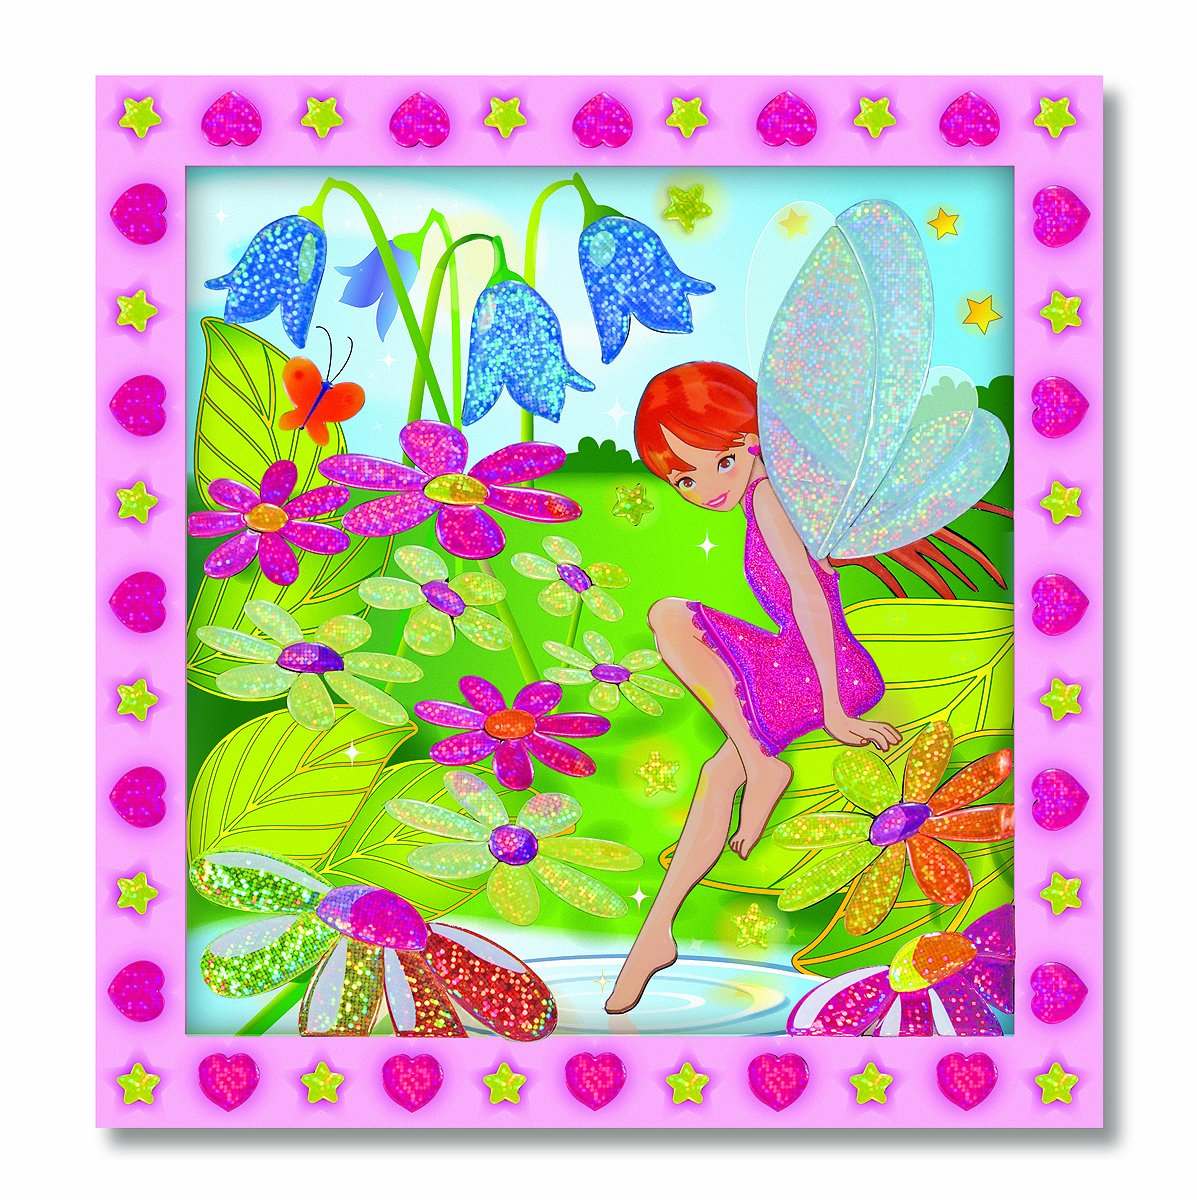 Melissa Doug Peel and Press Sticker by Number Activity Kit Flower Garden Fairy